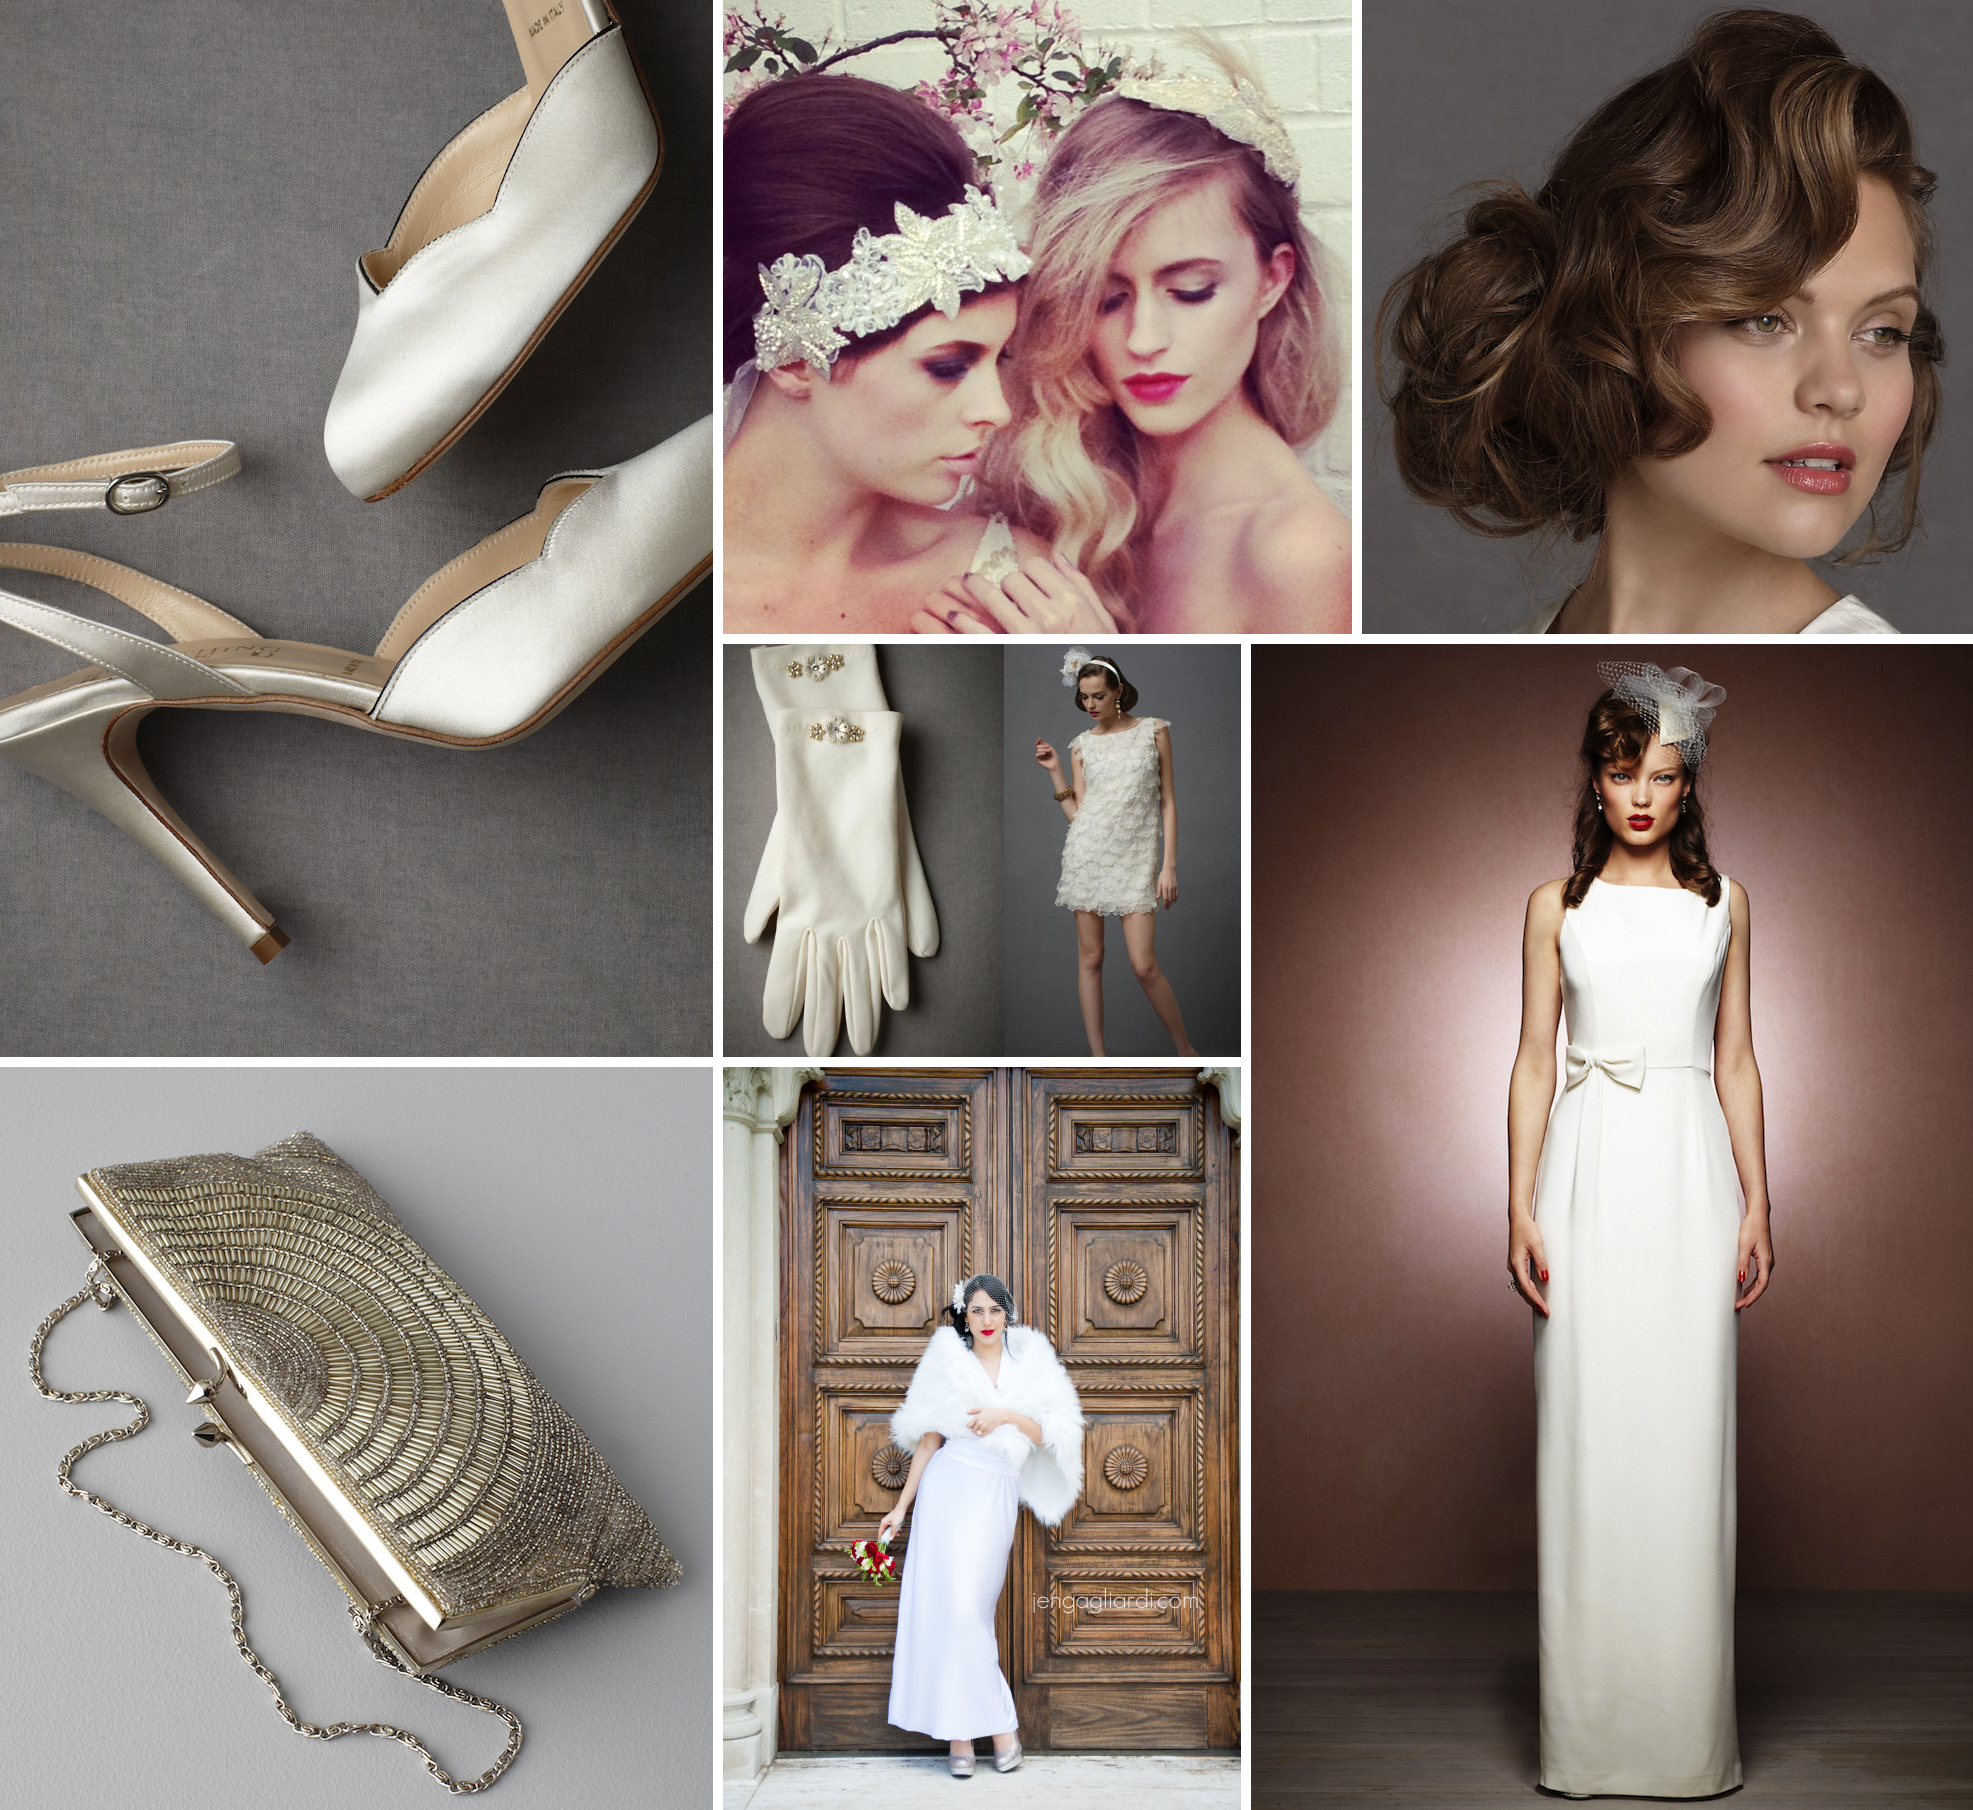 Brides-style-guide-to-dressing-for-the-wedding-vintage-bride.original